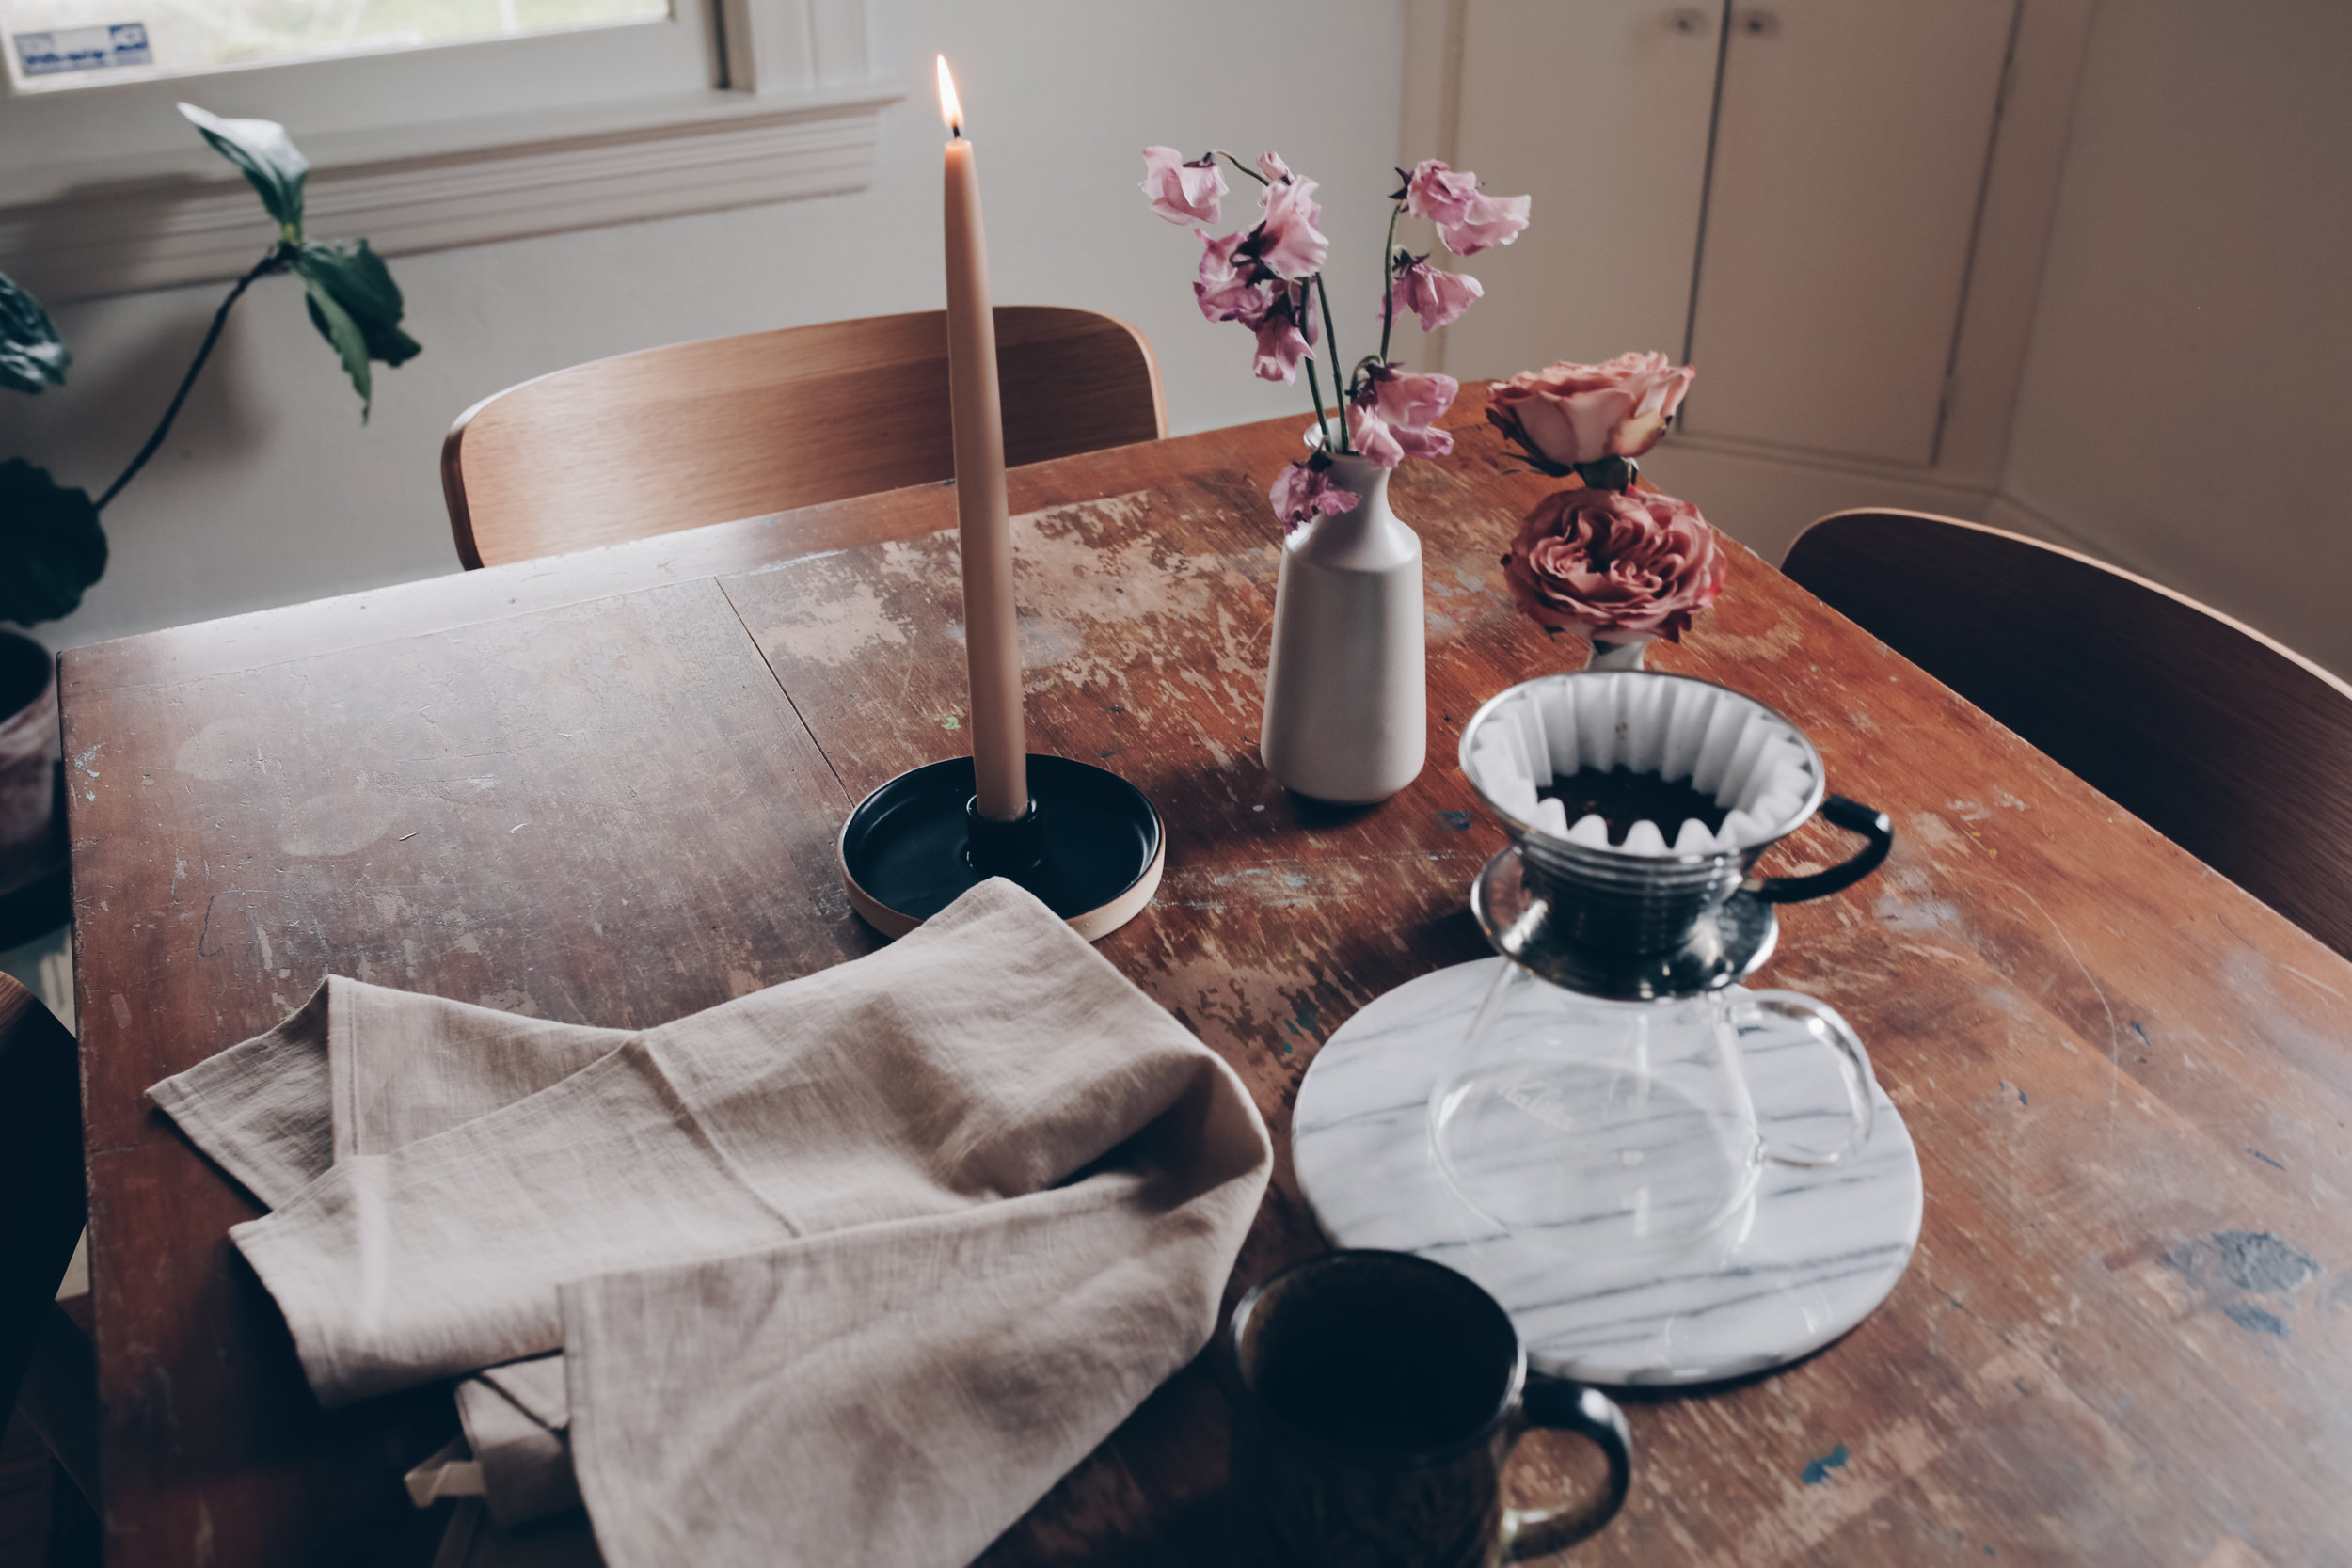 morning table scenes with coffee and candles